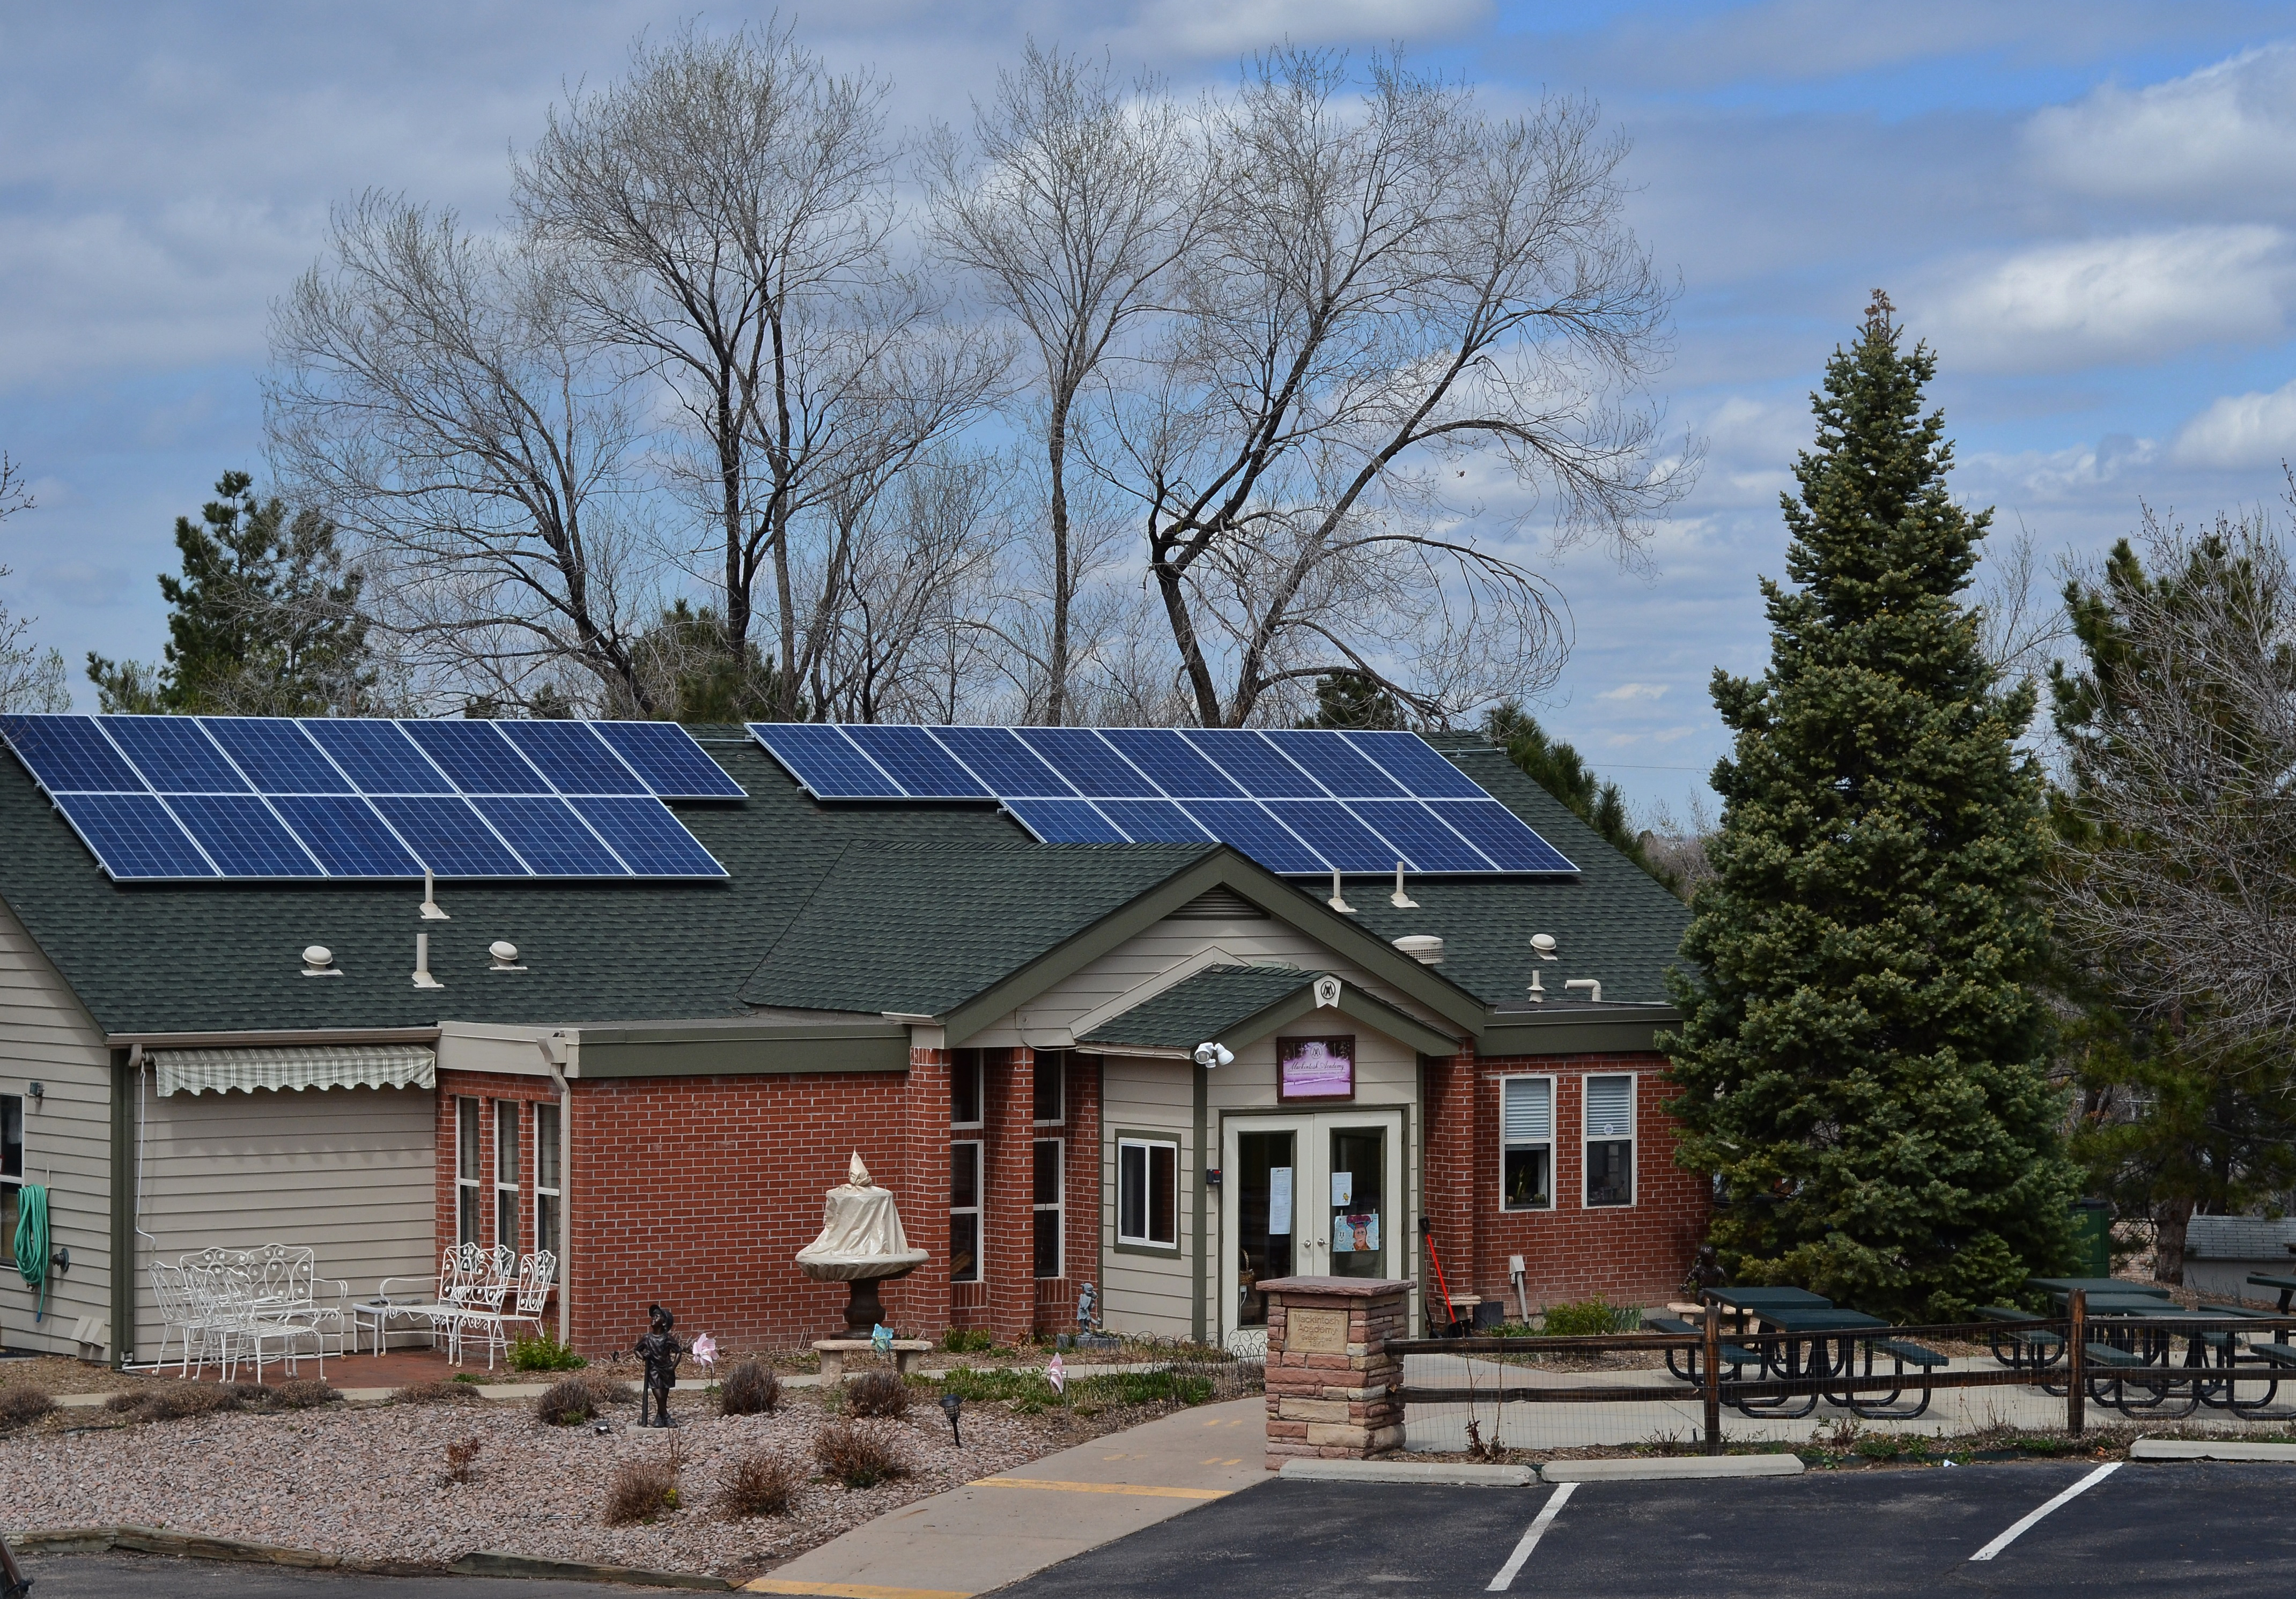 Photo: Macintosh Academy solar project installed